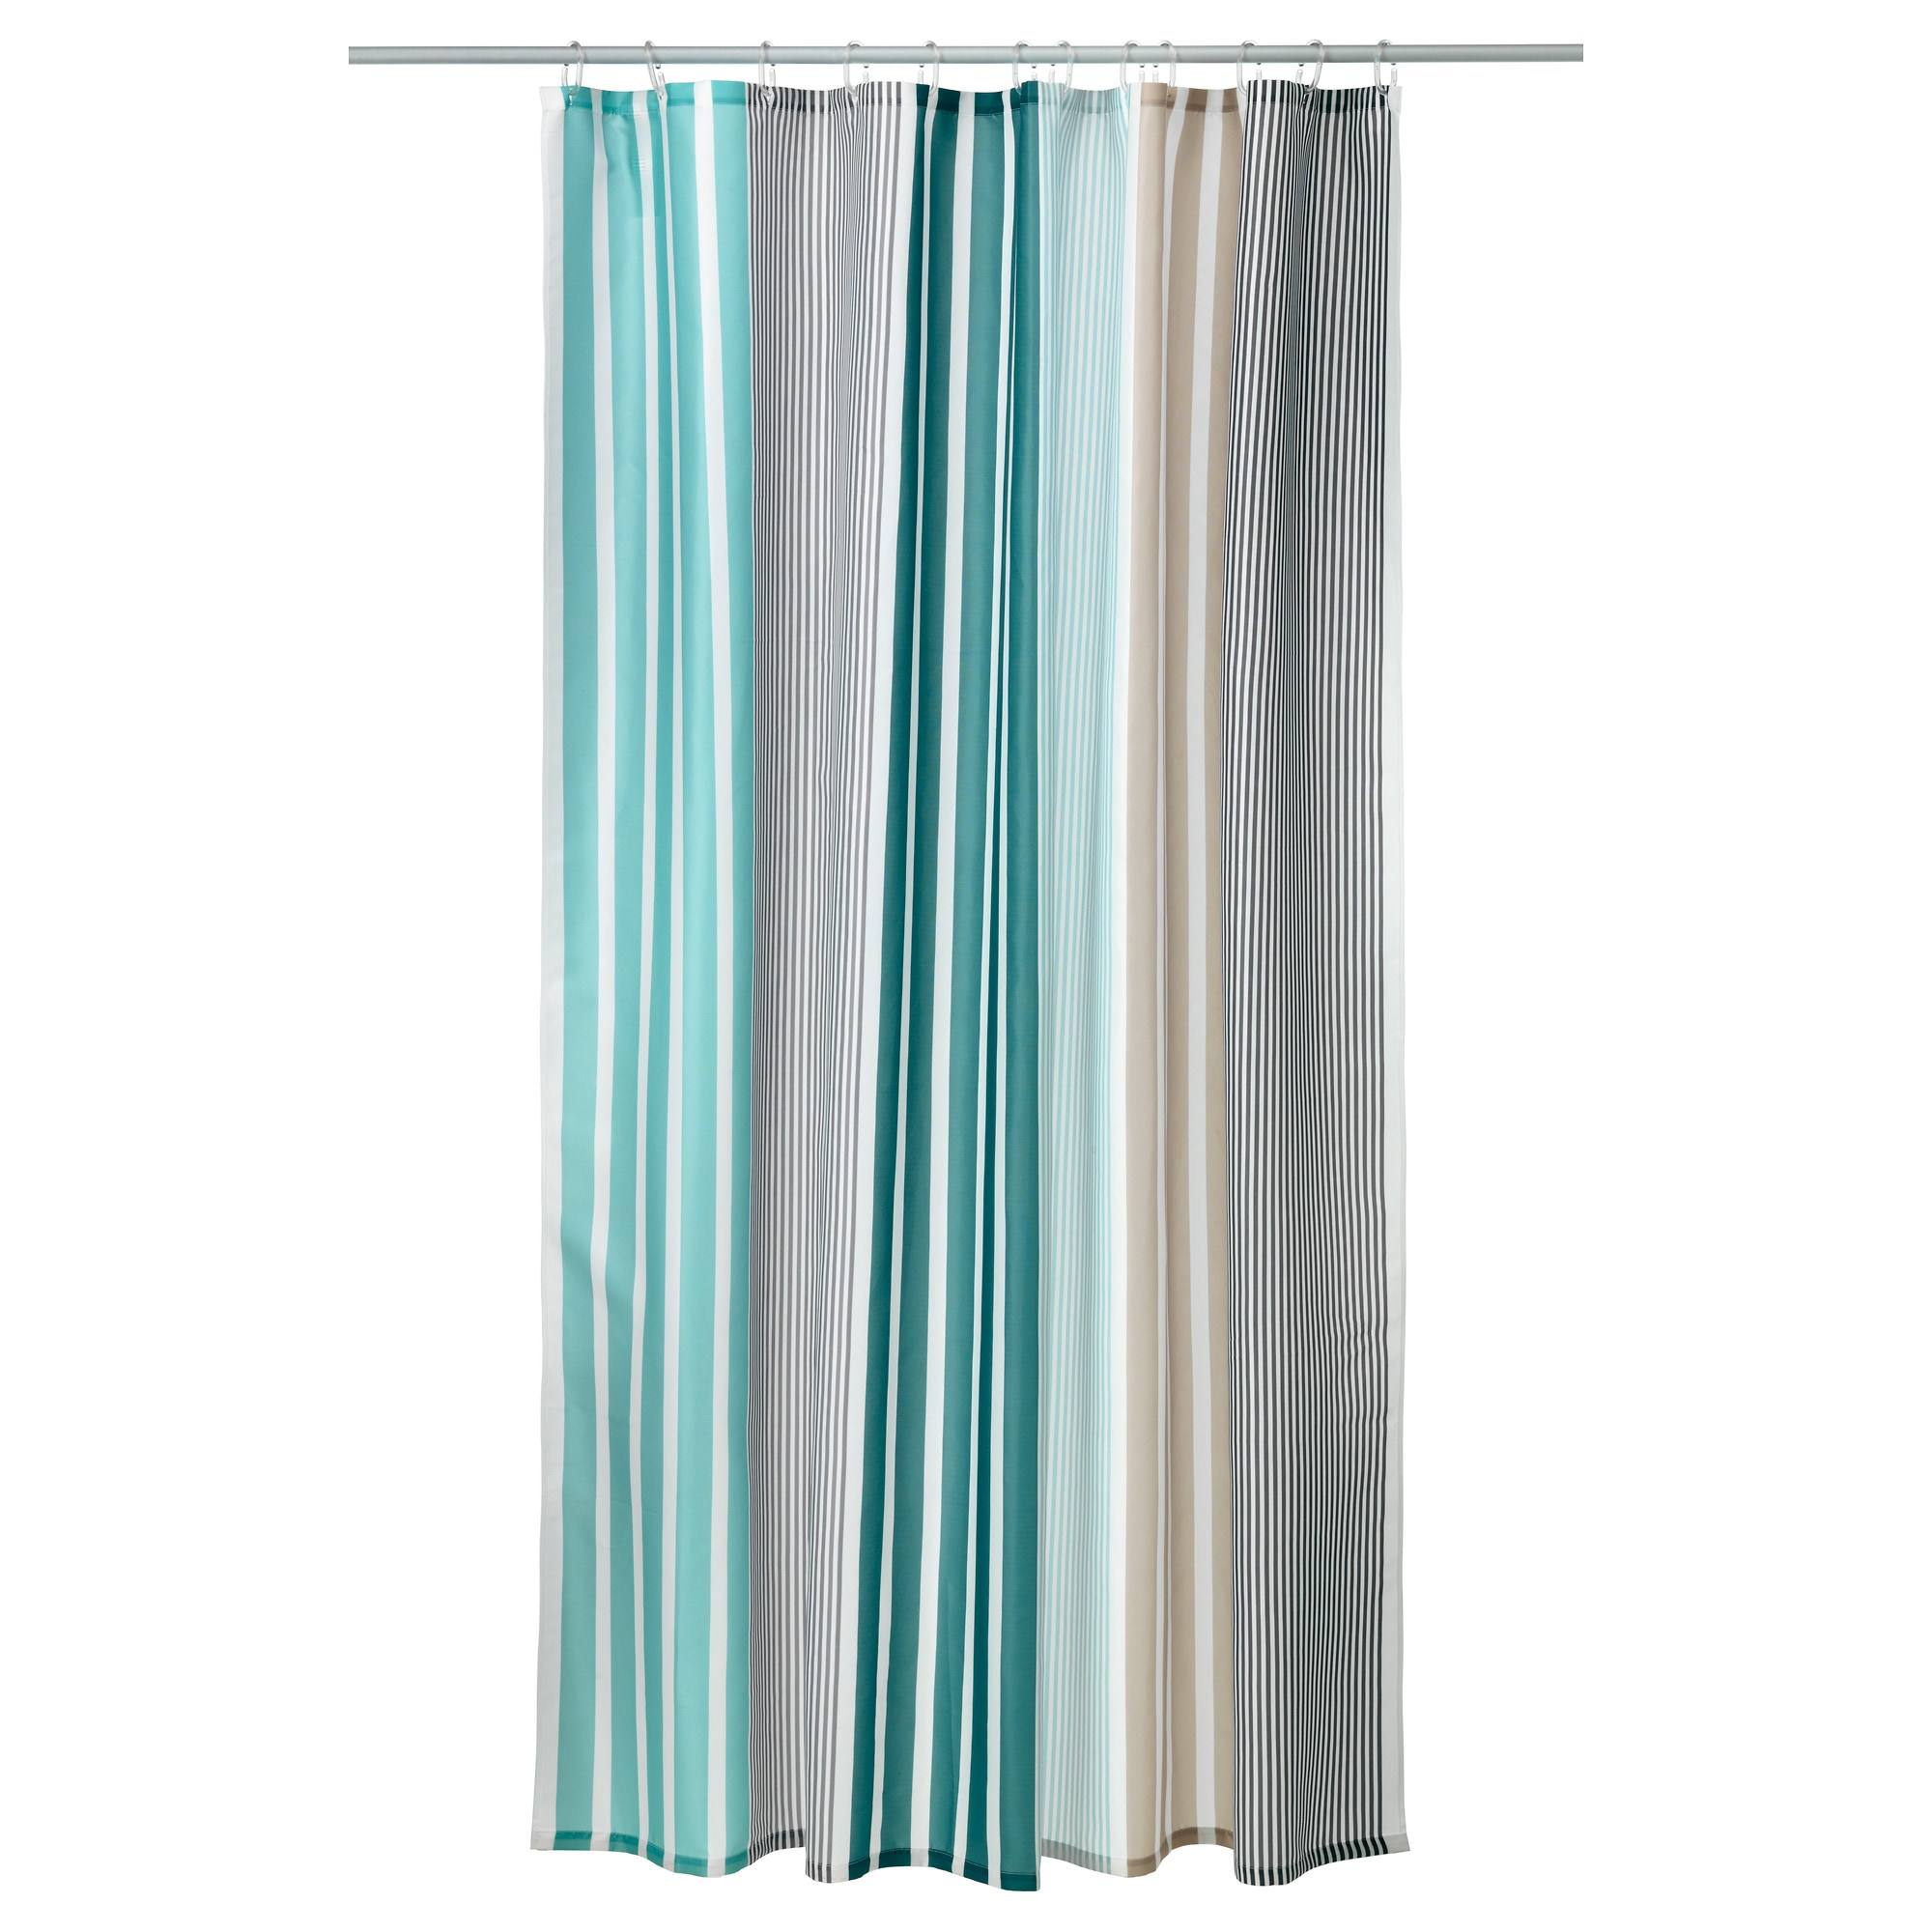 Bathroom plastic curtains - Bolm N Shower Curtain Multicolor Length 71 Width 71 Area 34 88